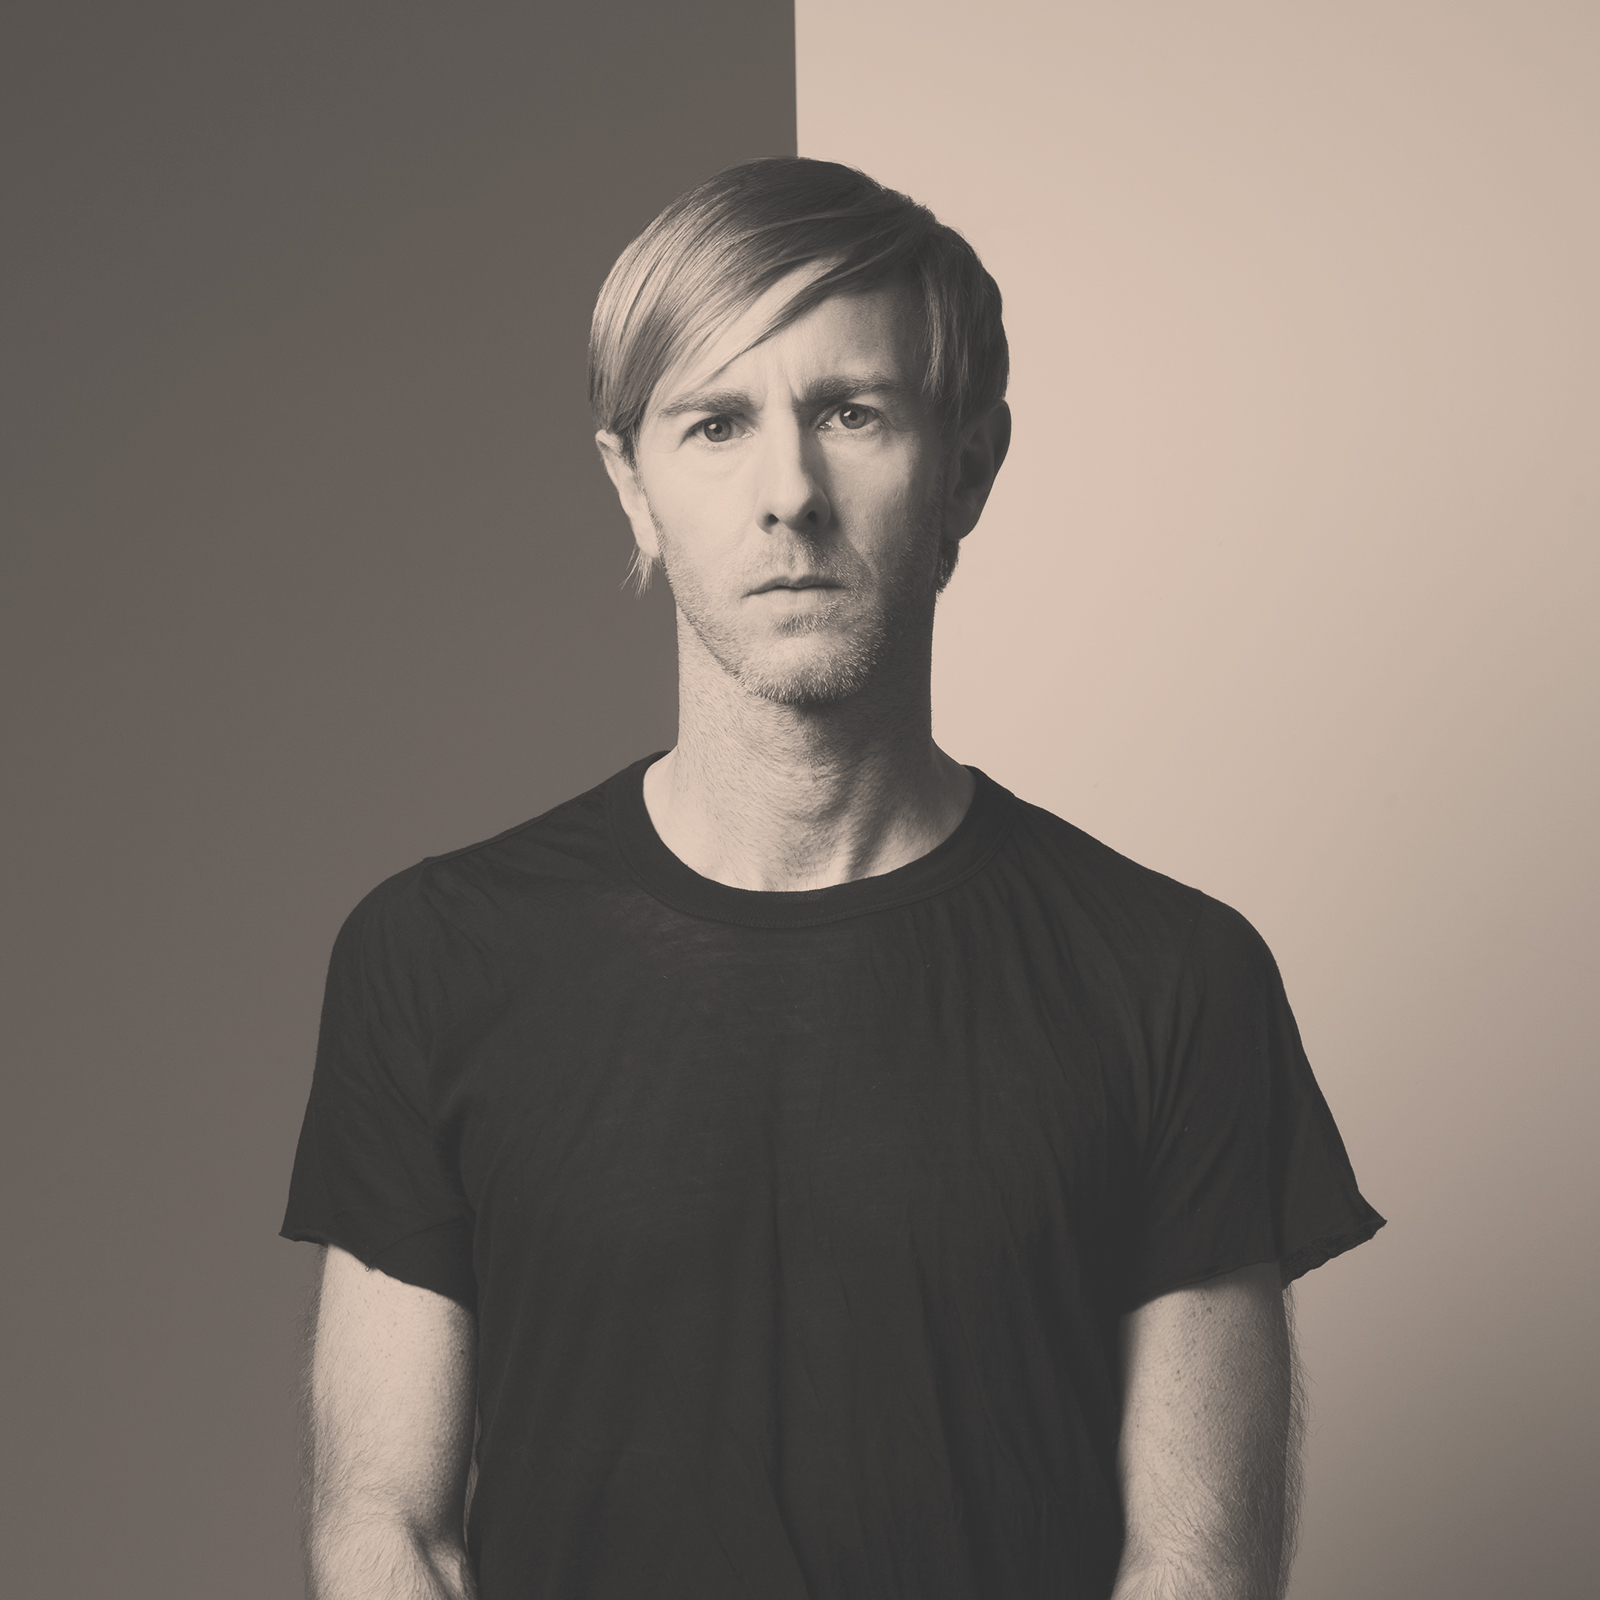 Richie Hawtin - Richie Hawtin is one of the most renowned DJ's in the world and has headlined some of the most prestigious festivals and events in club culture to date.Collective Minds successfully booked and helped to promote Richie Hawtin's sold out Hong Kong event.